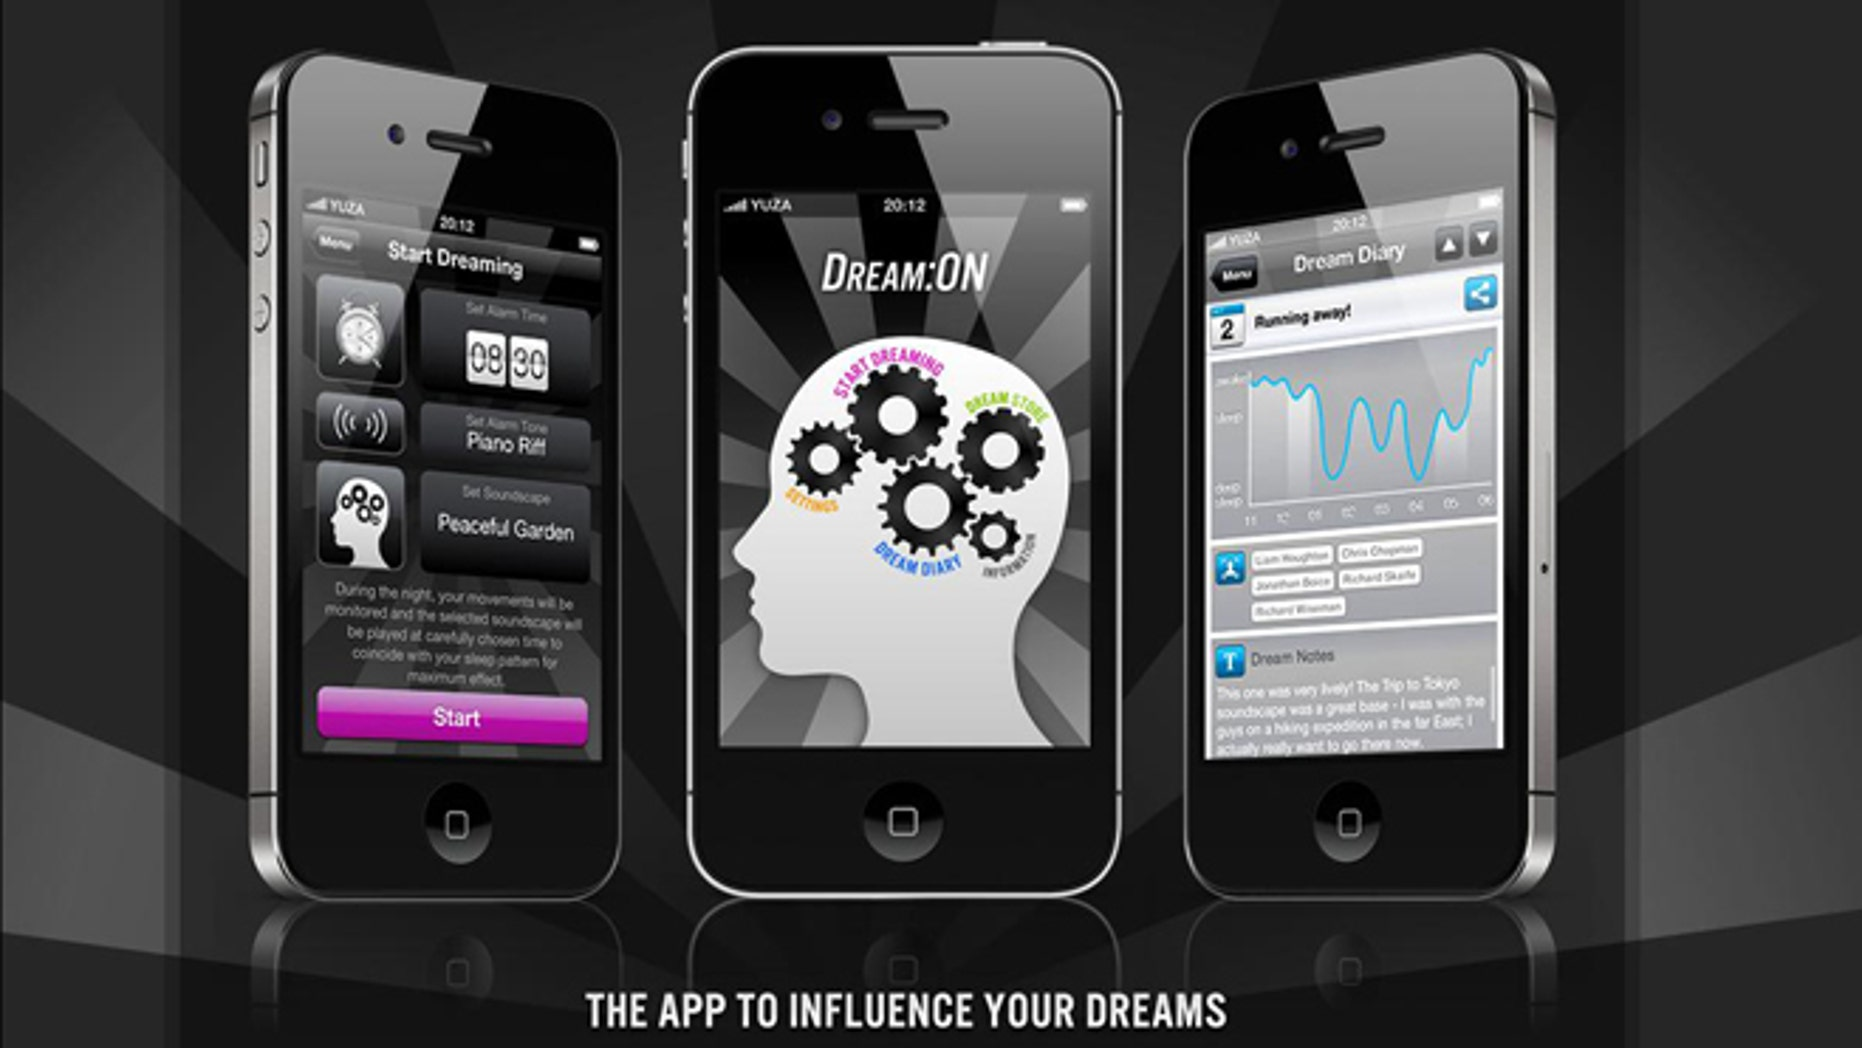 The website for Dream:ON explains how the sleep study app works.